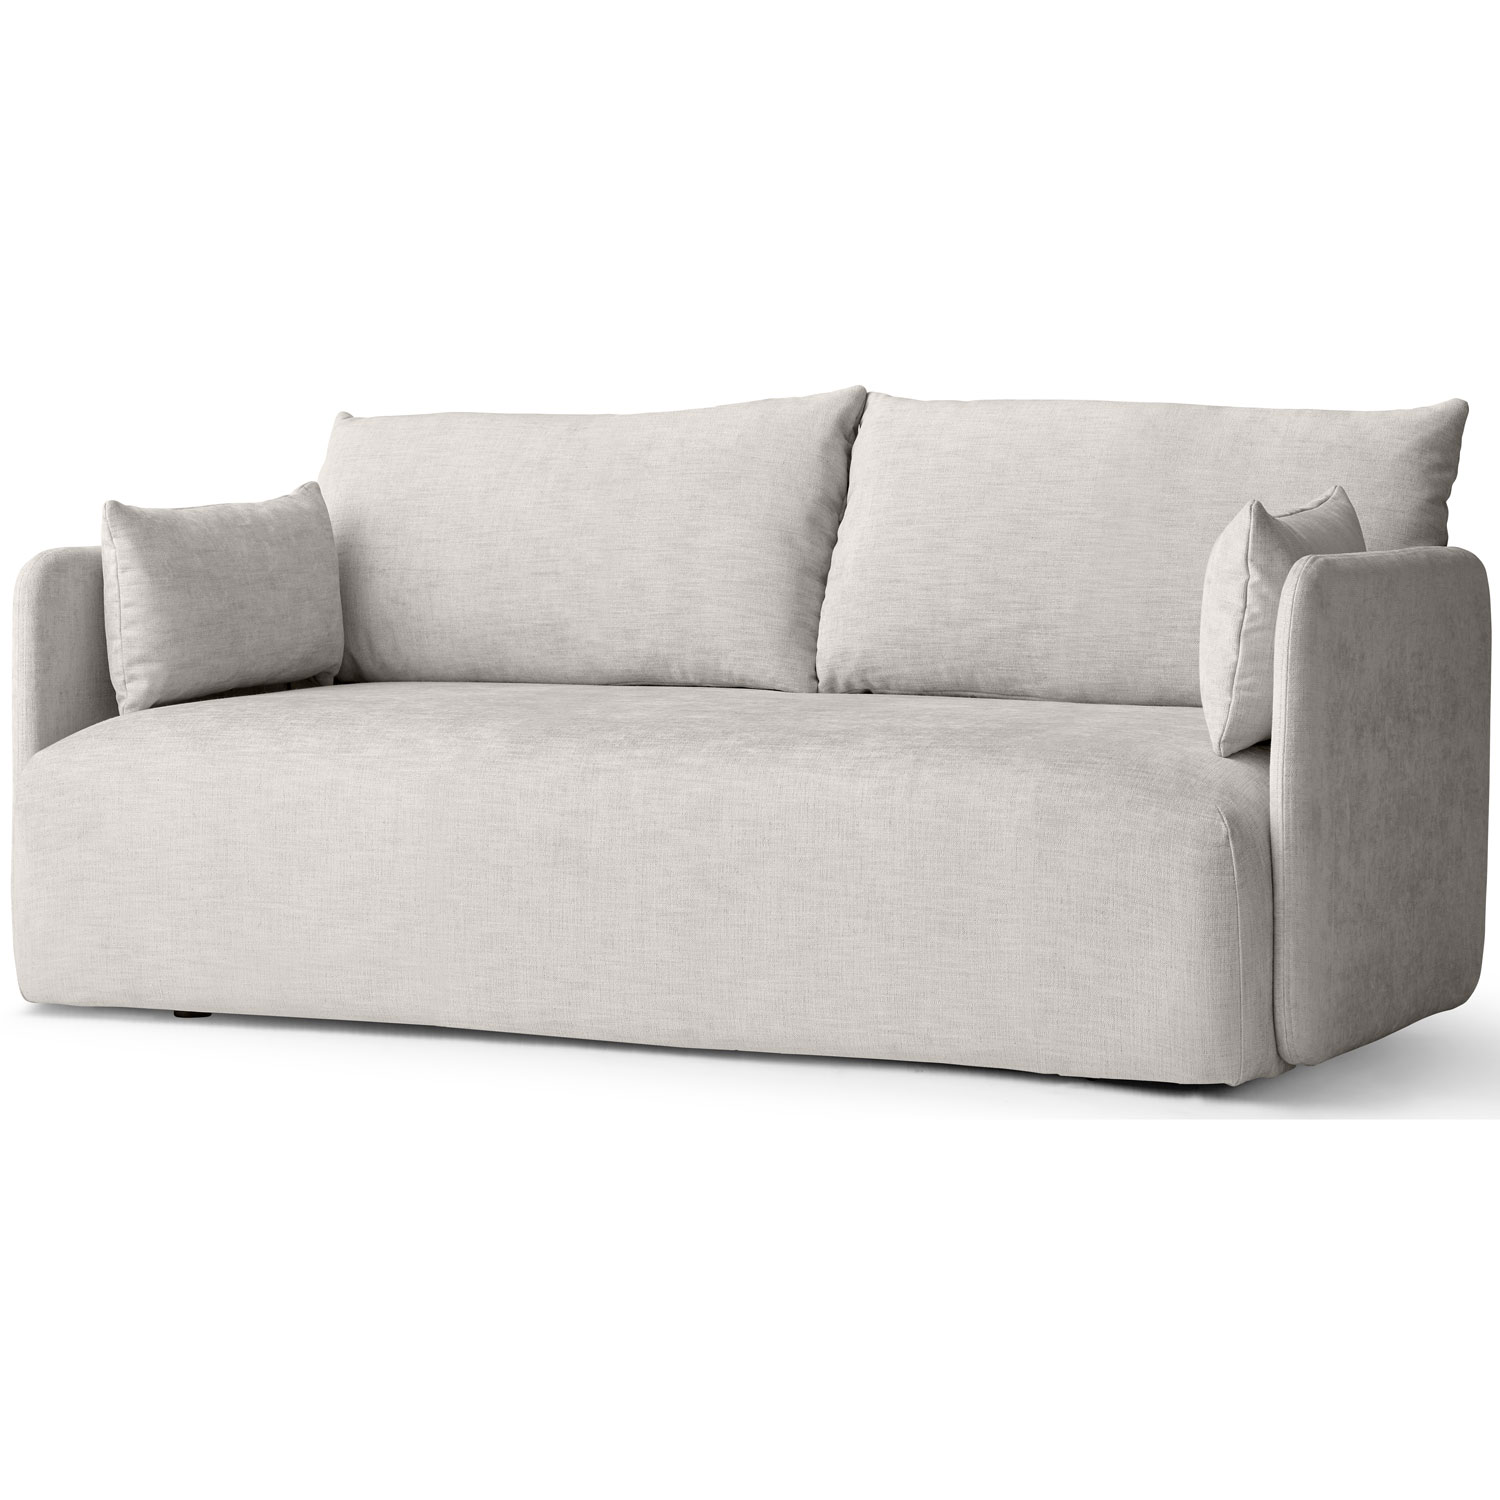 Offset Sofa 2 Seater, Maple 222